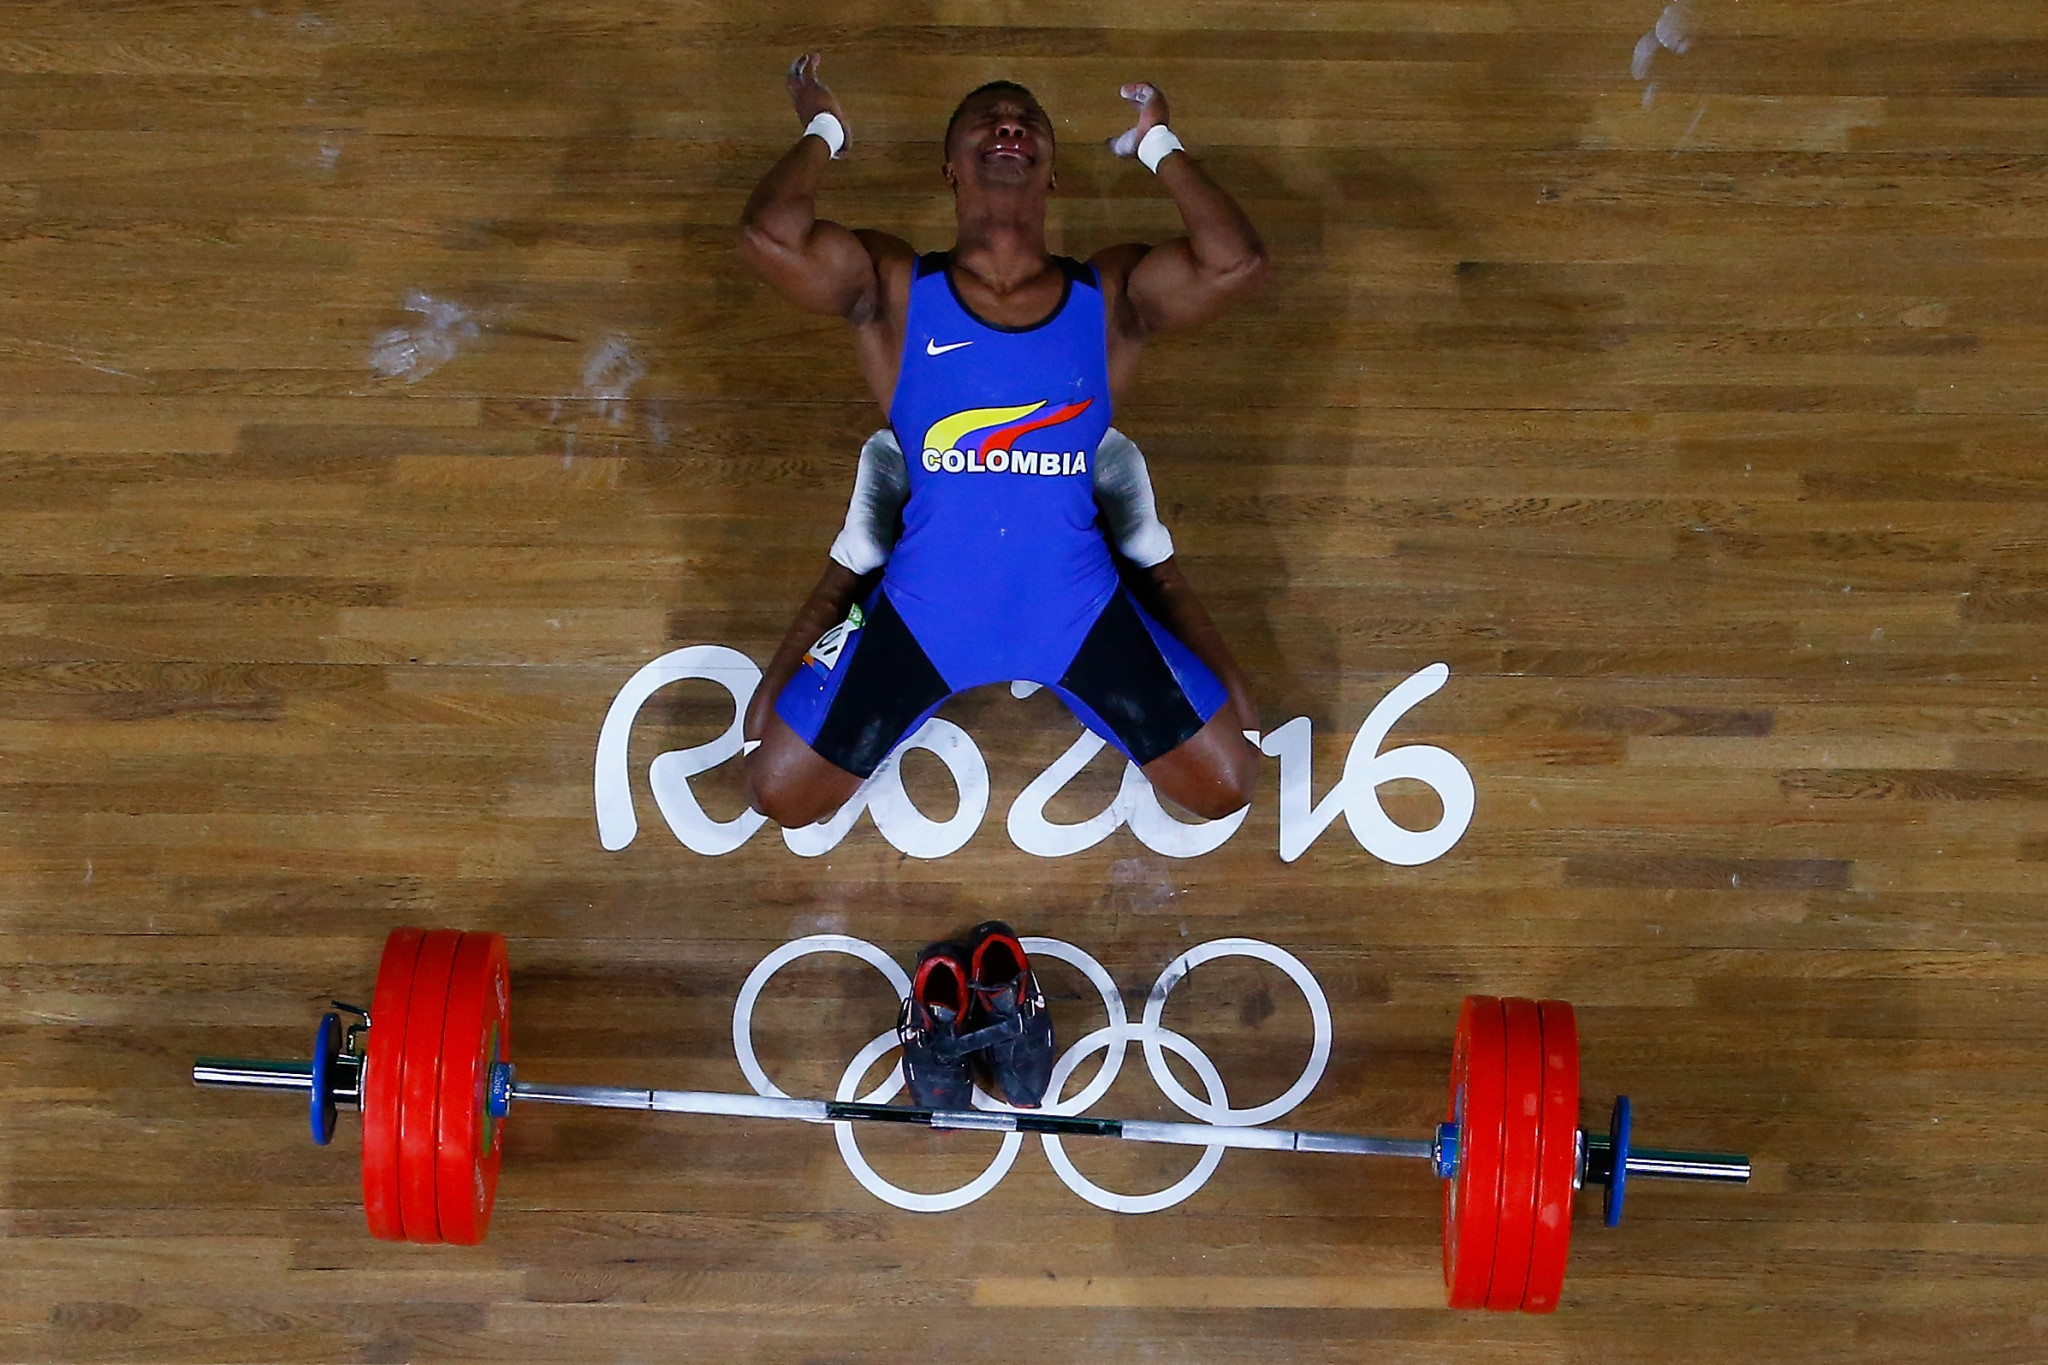 Oscar Figueroa won gold for Colombia in the men's 62kg category at the Rio 2016 Olympic Games ©Getty Images